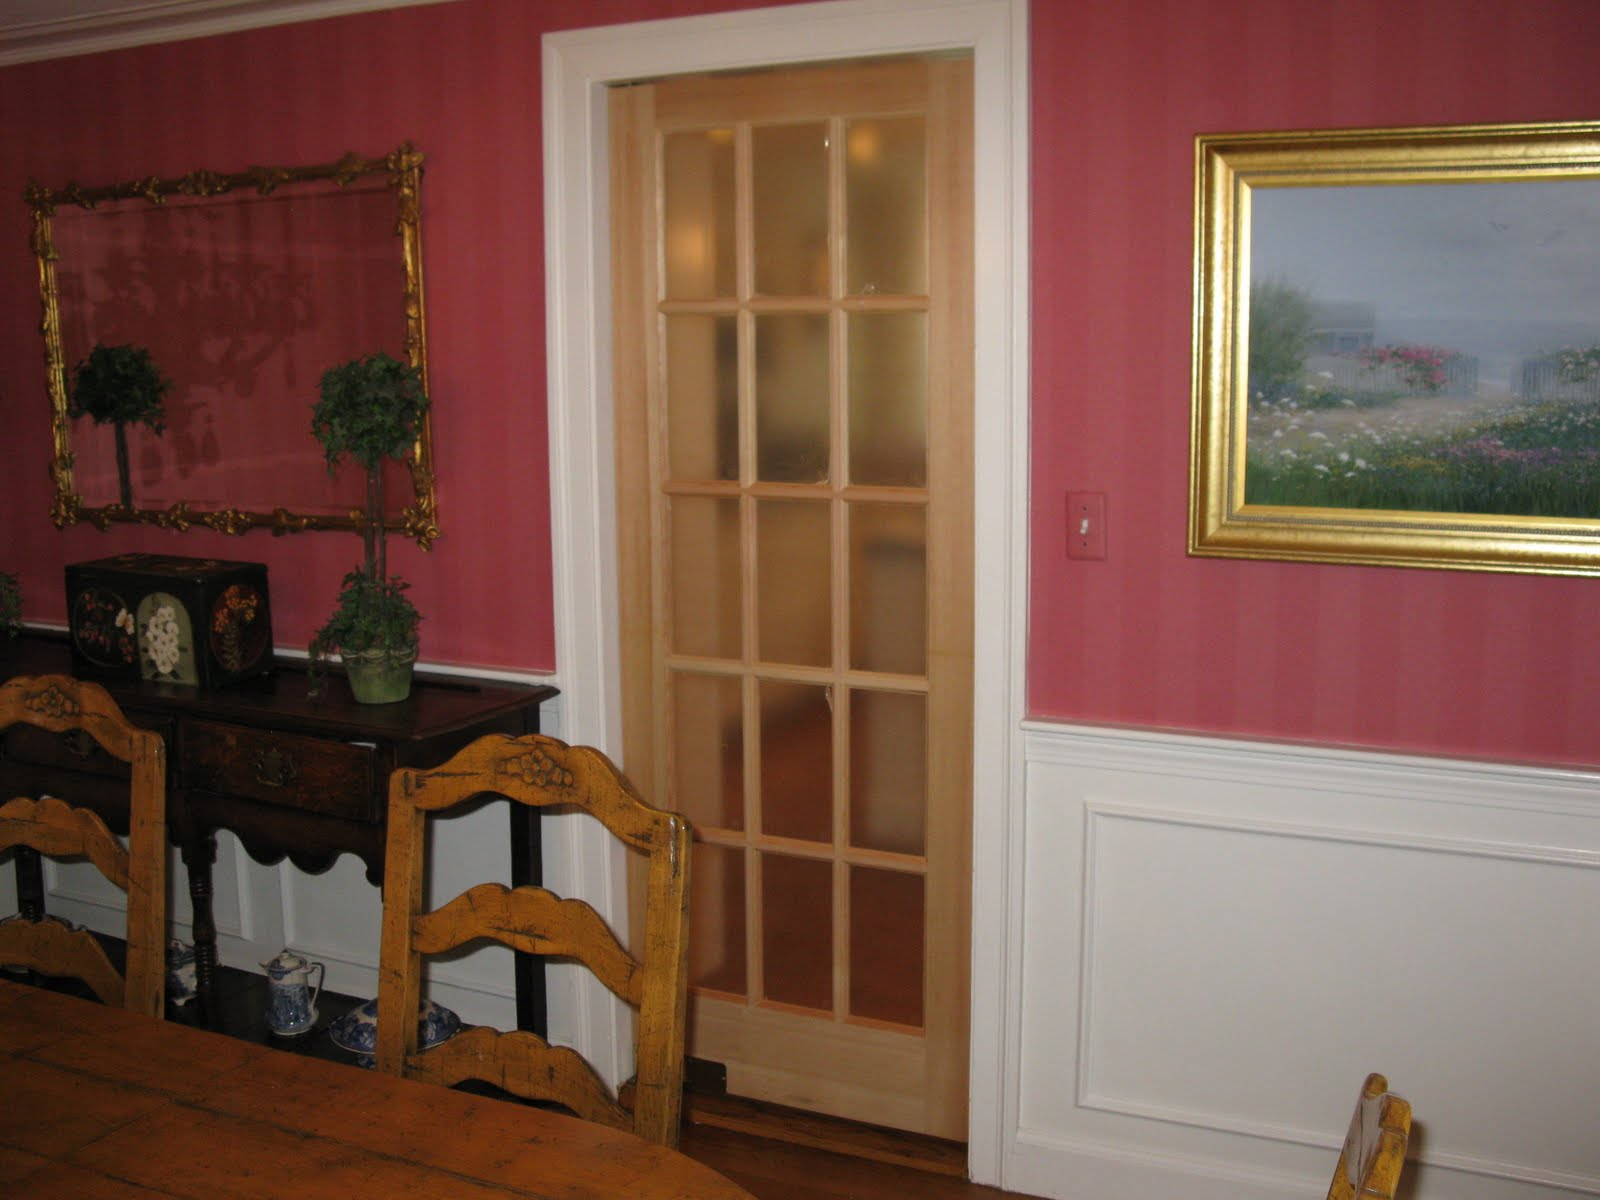 New ... & Installing A Swinging Butler Door - Page 2 of 2 - A Concord Carpenter